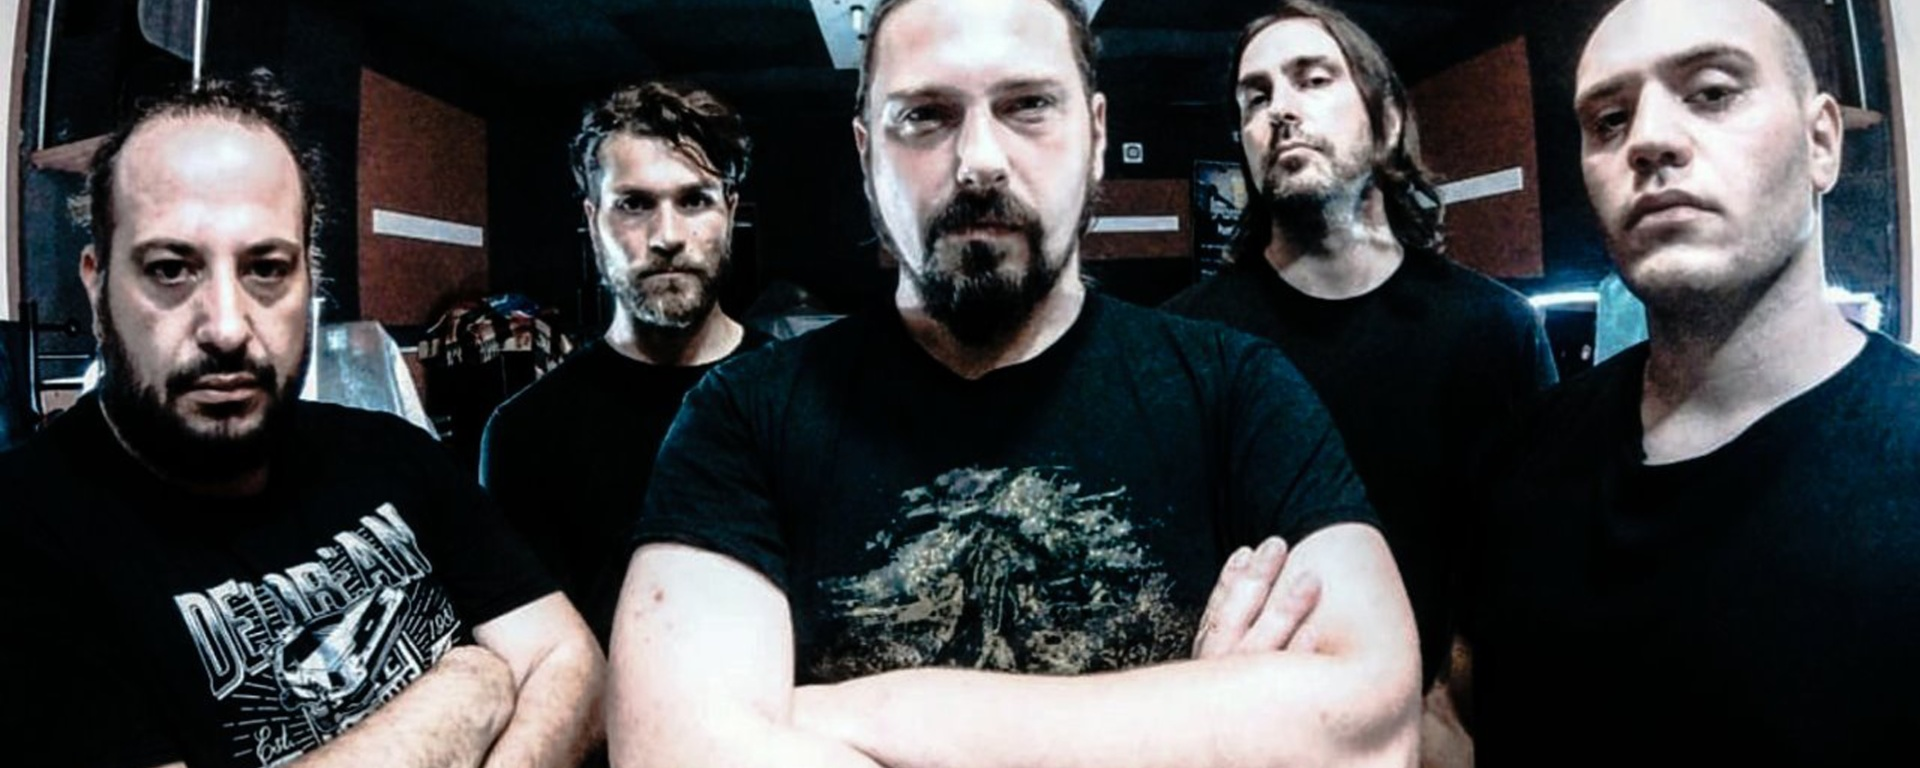 "REALITY GREY To Release Pure Melodic Anger With New Album ""Beneath This Crown"""